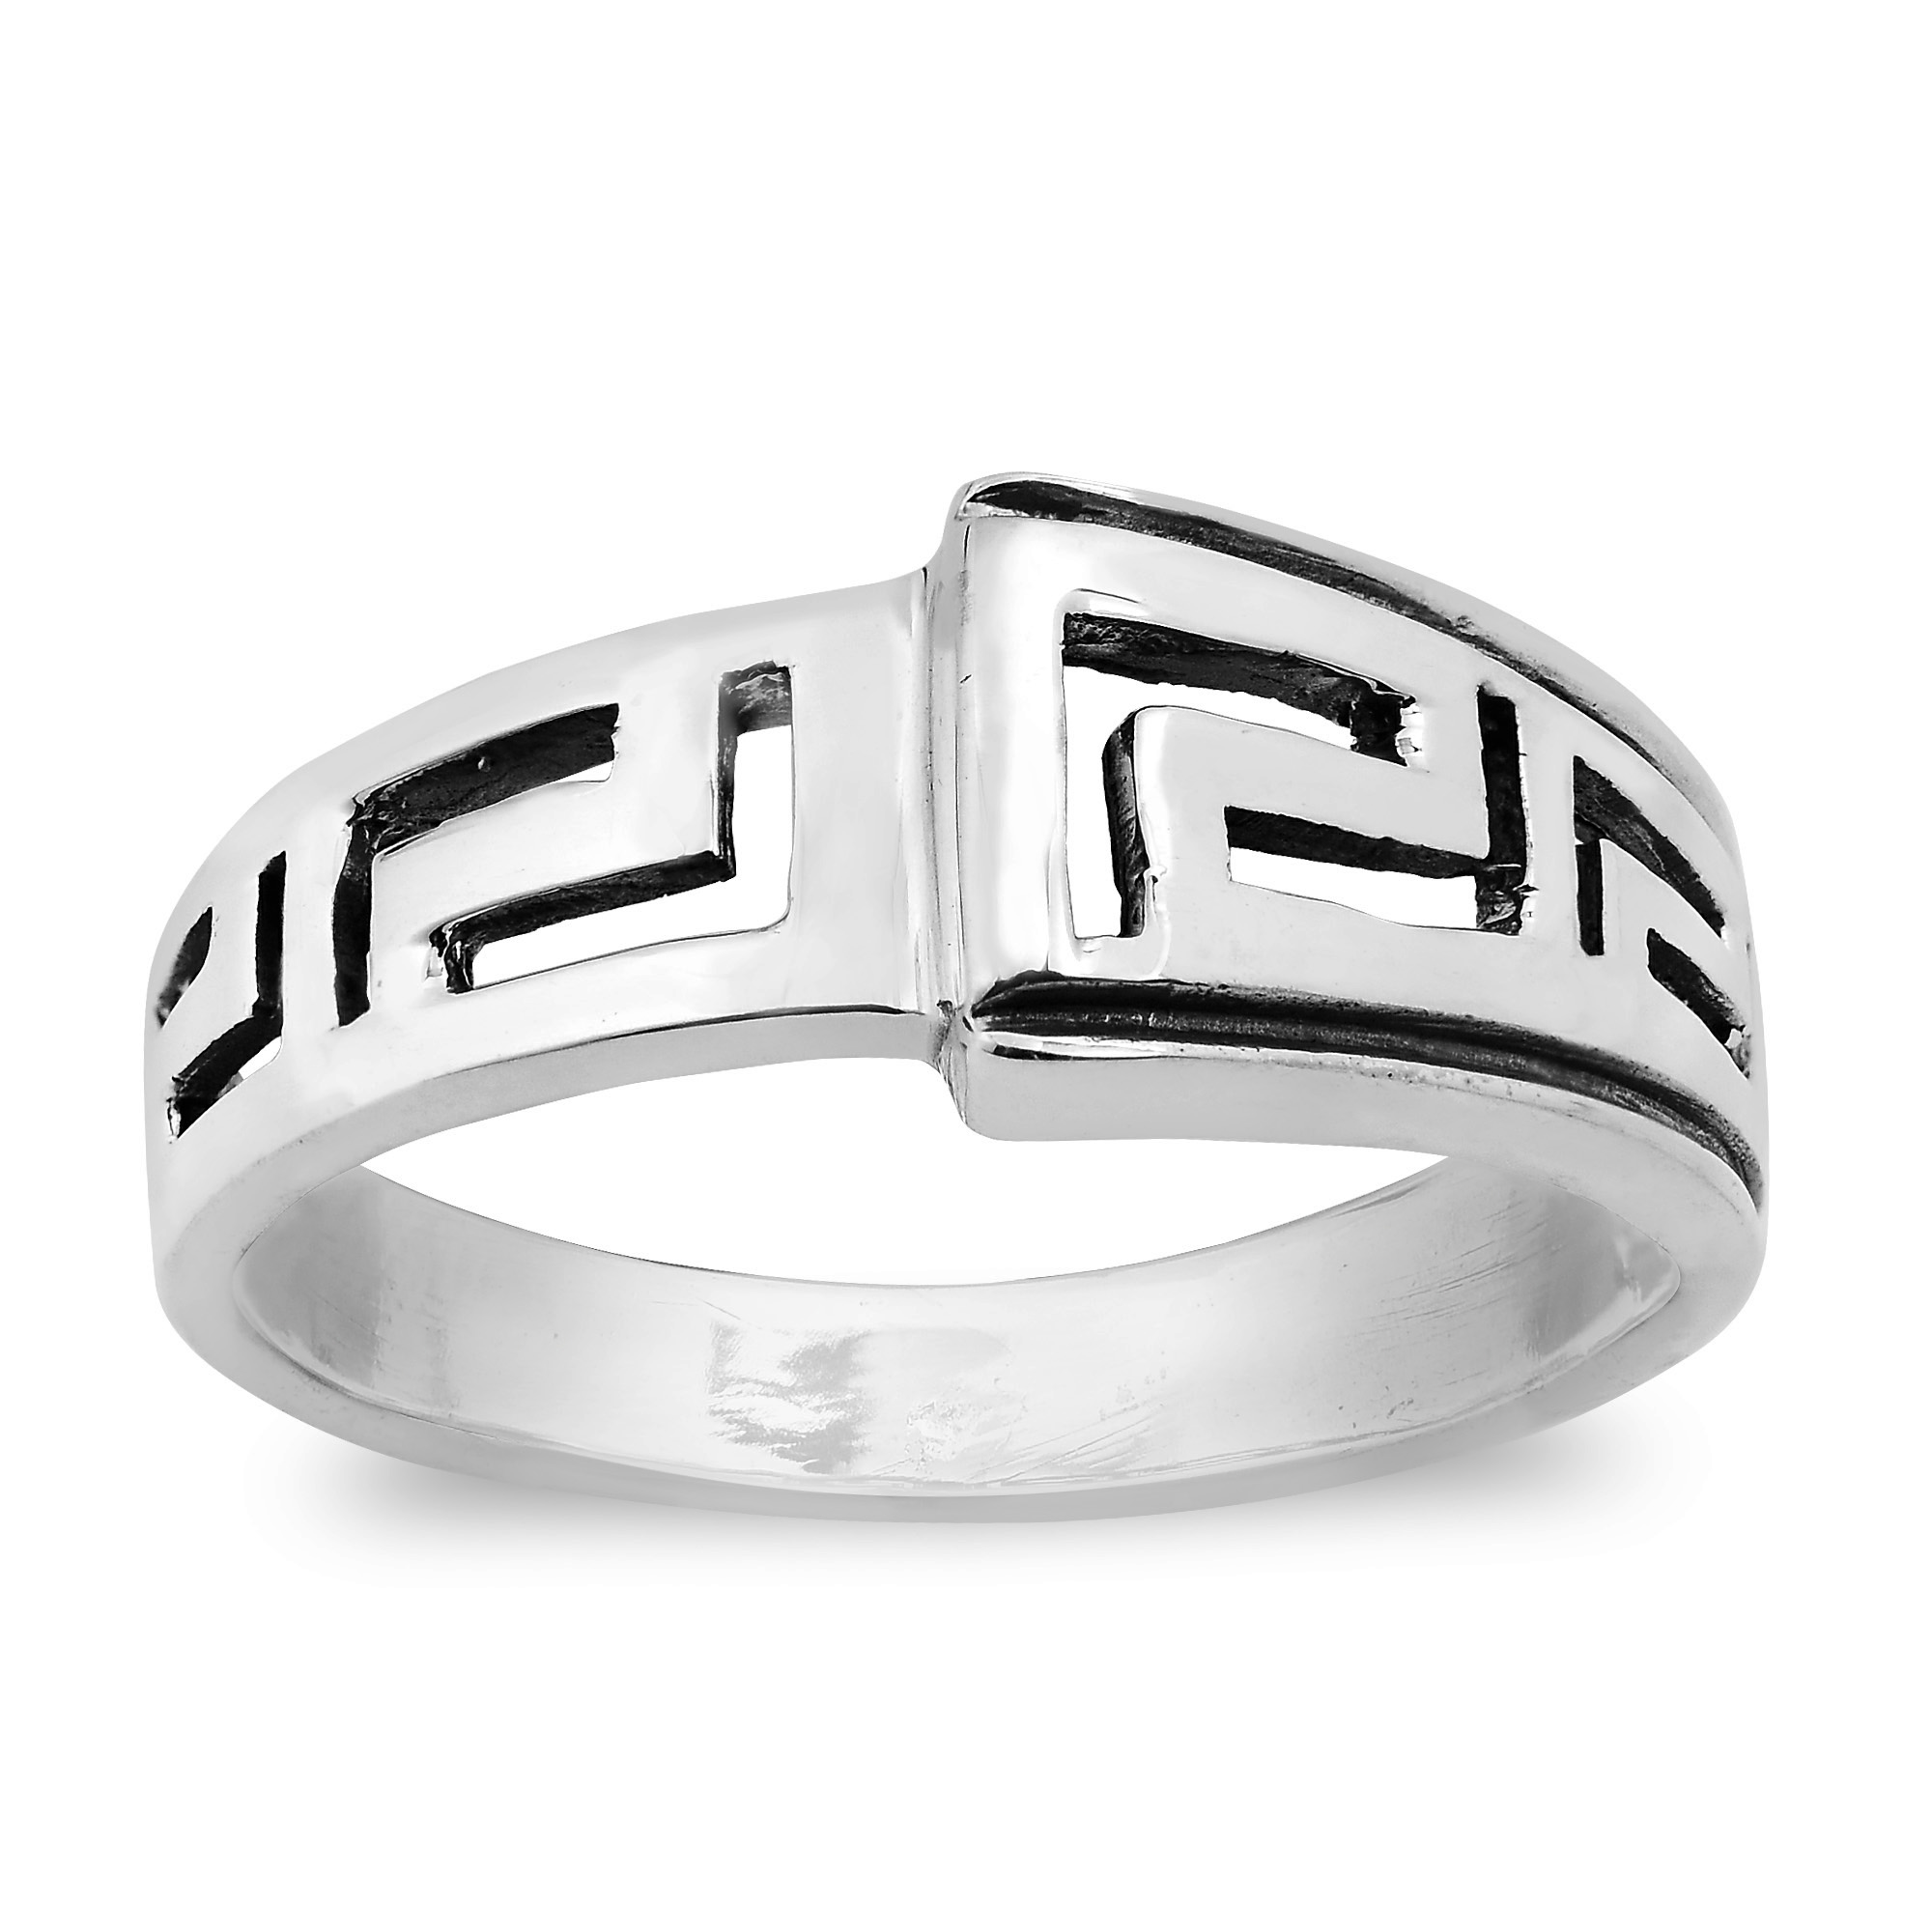 over etched product men jewelry steel greek orders ring overstock s free on white mens key laser rings engagement watches stainless band shipping